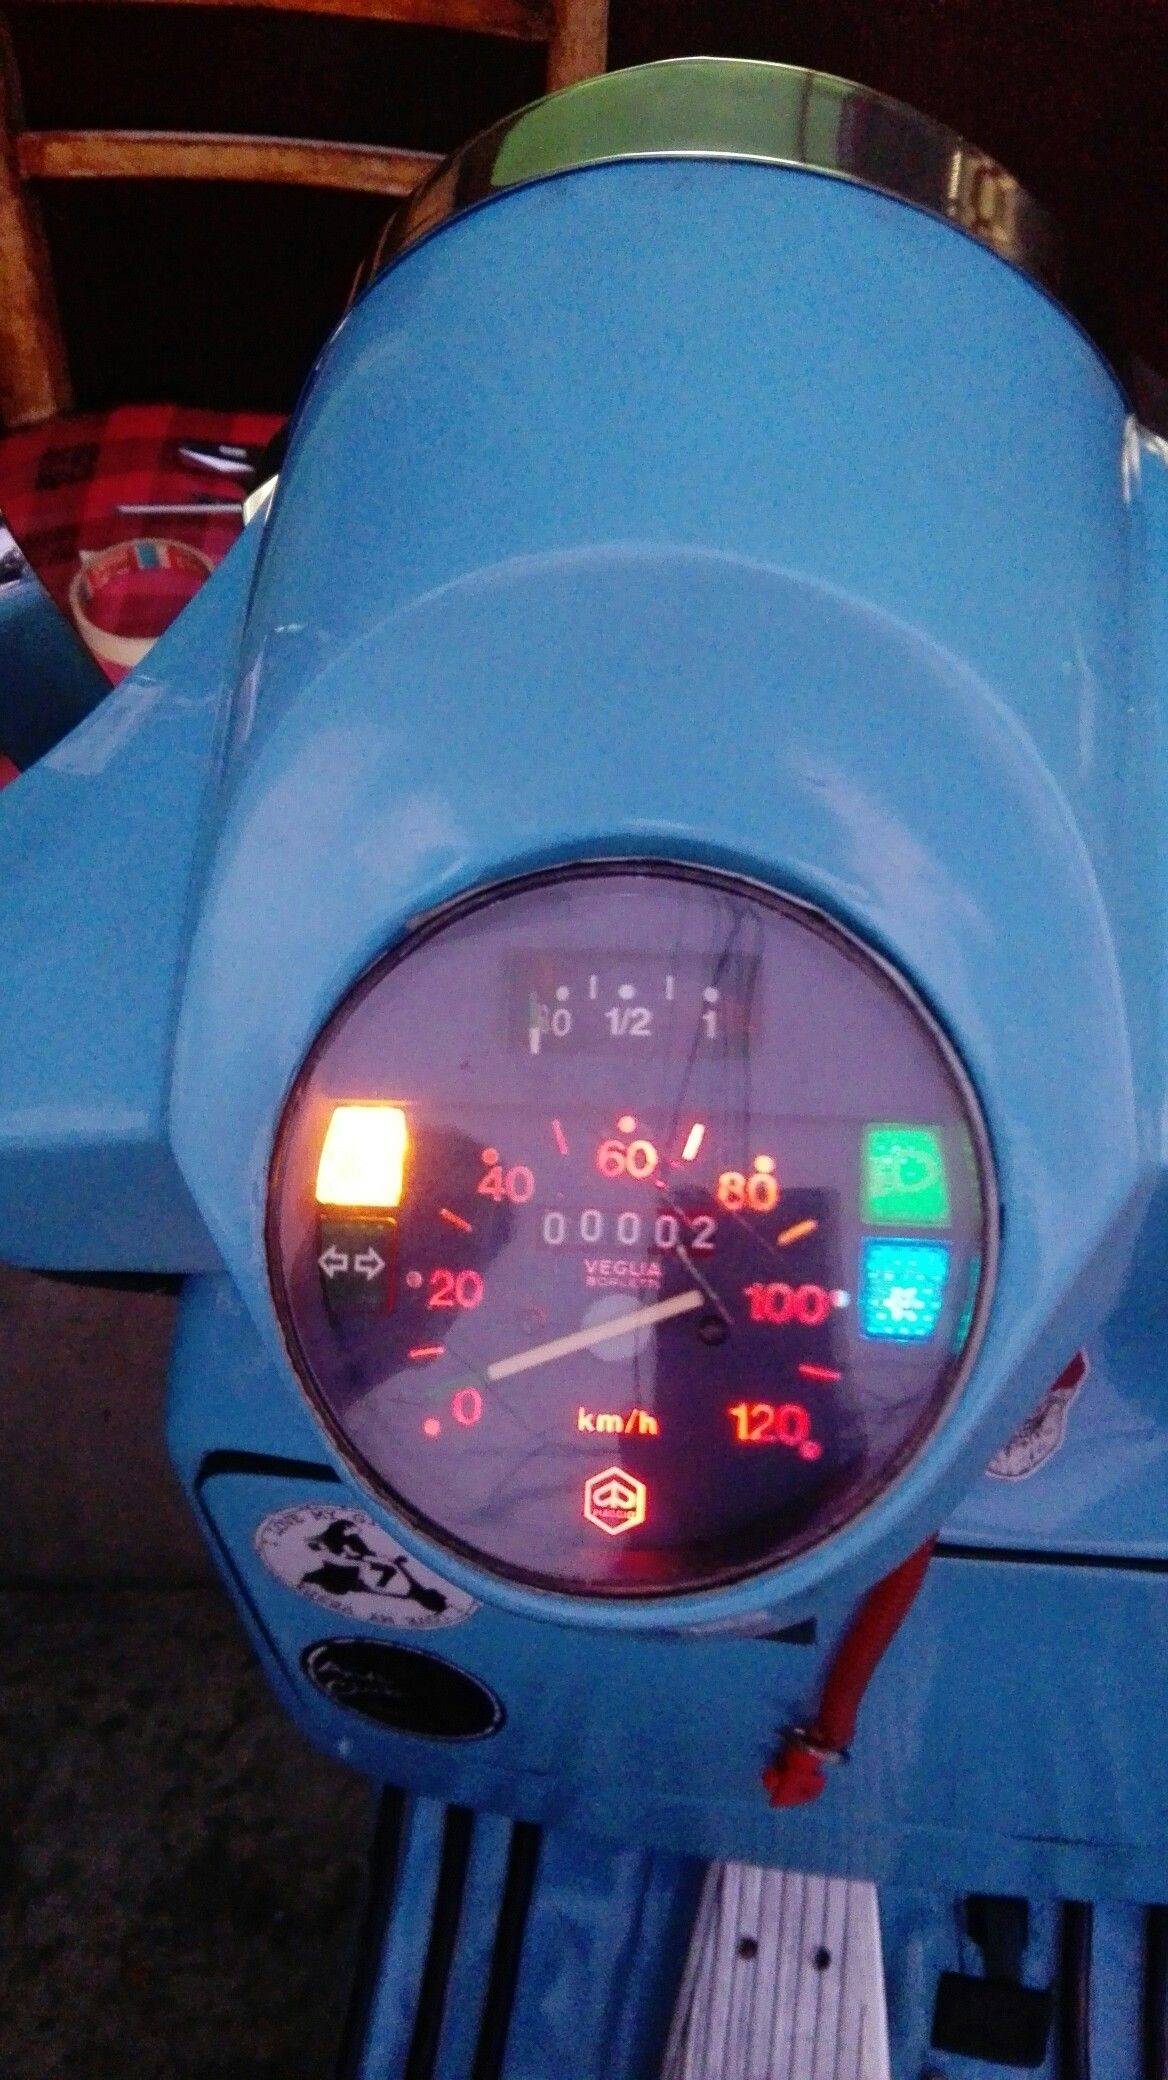 Xenon Verlichting Vespa Sprint Pin De James Ramirez En Vespa Led Vespa Y Led